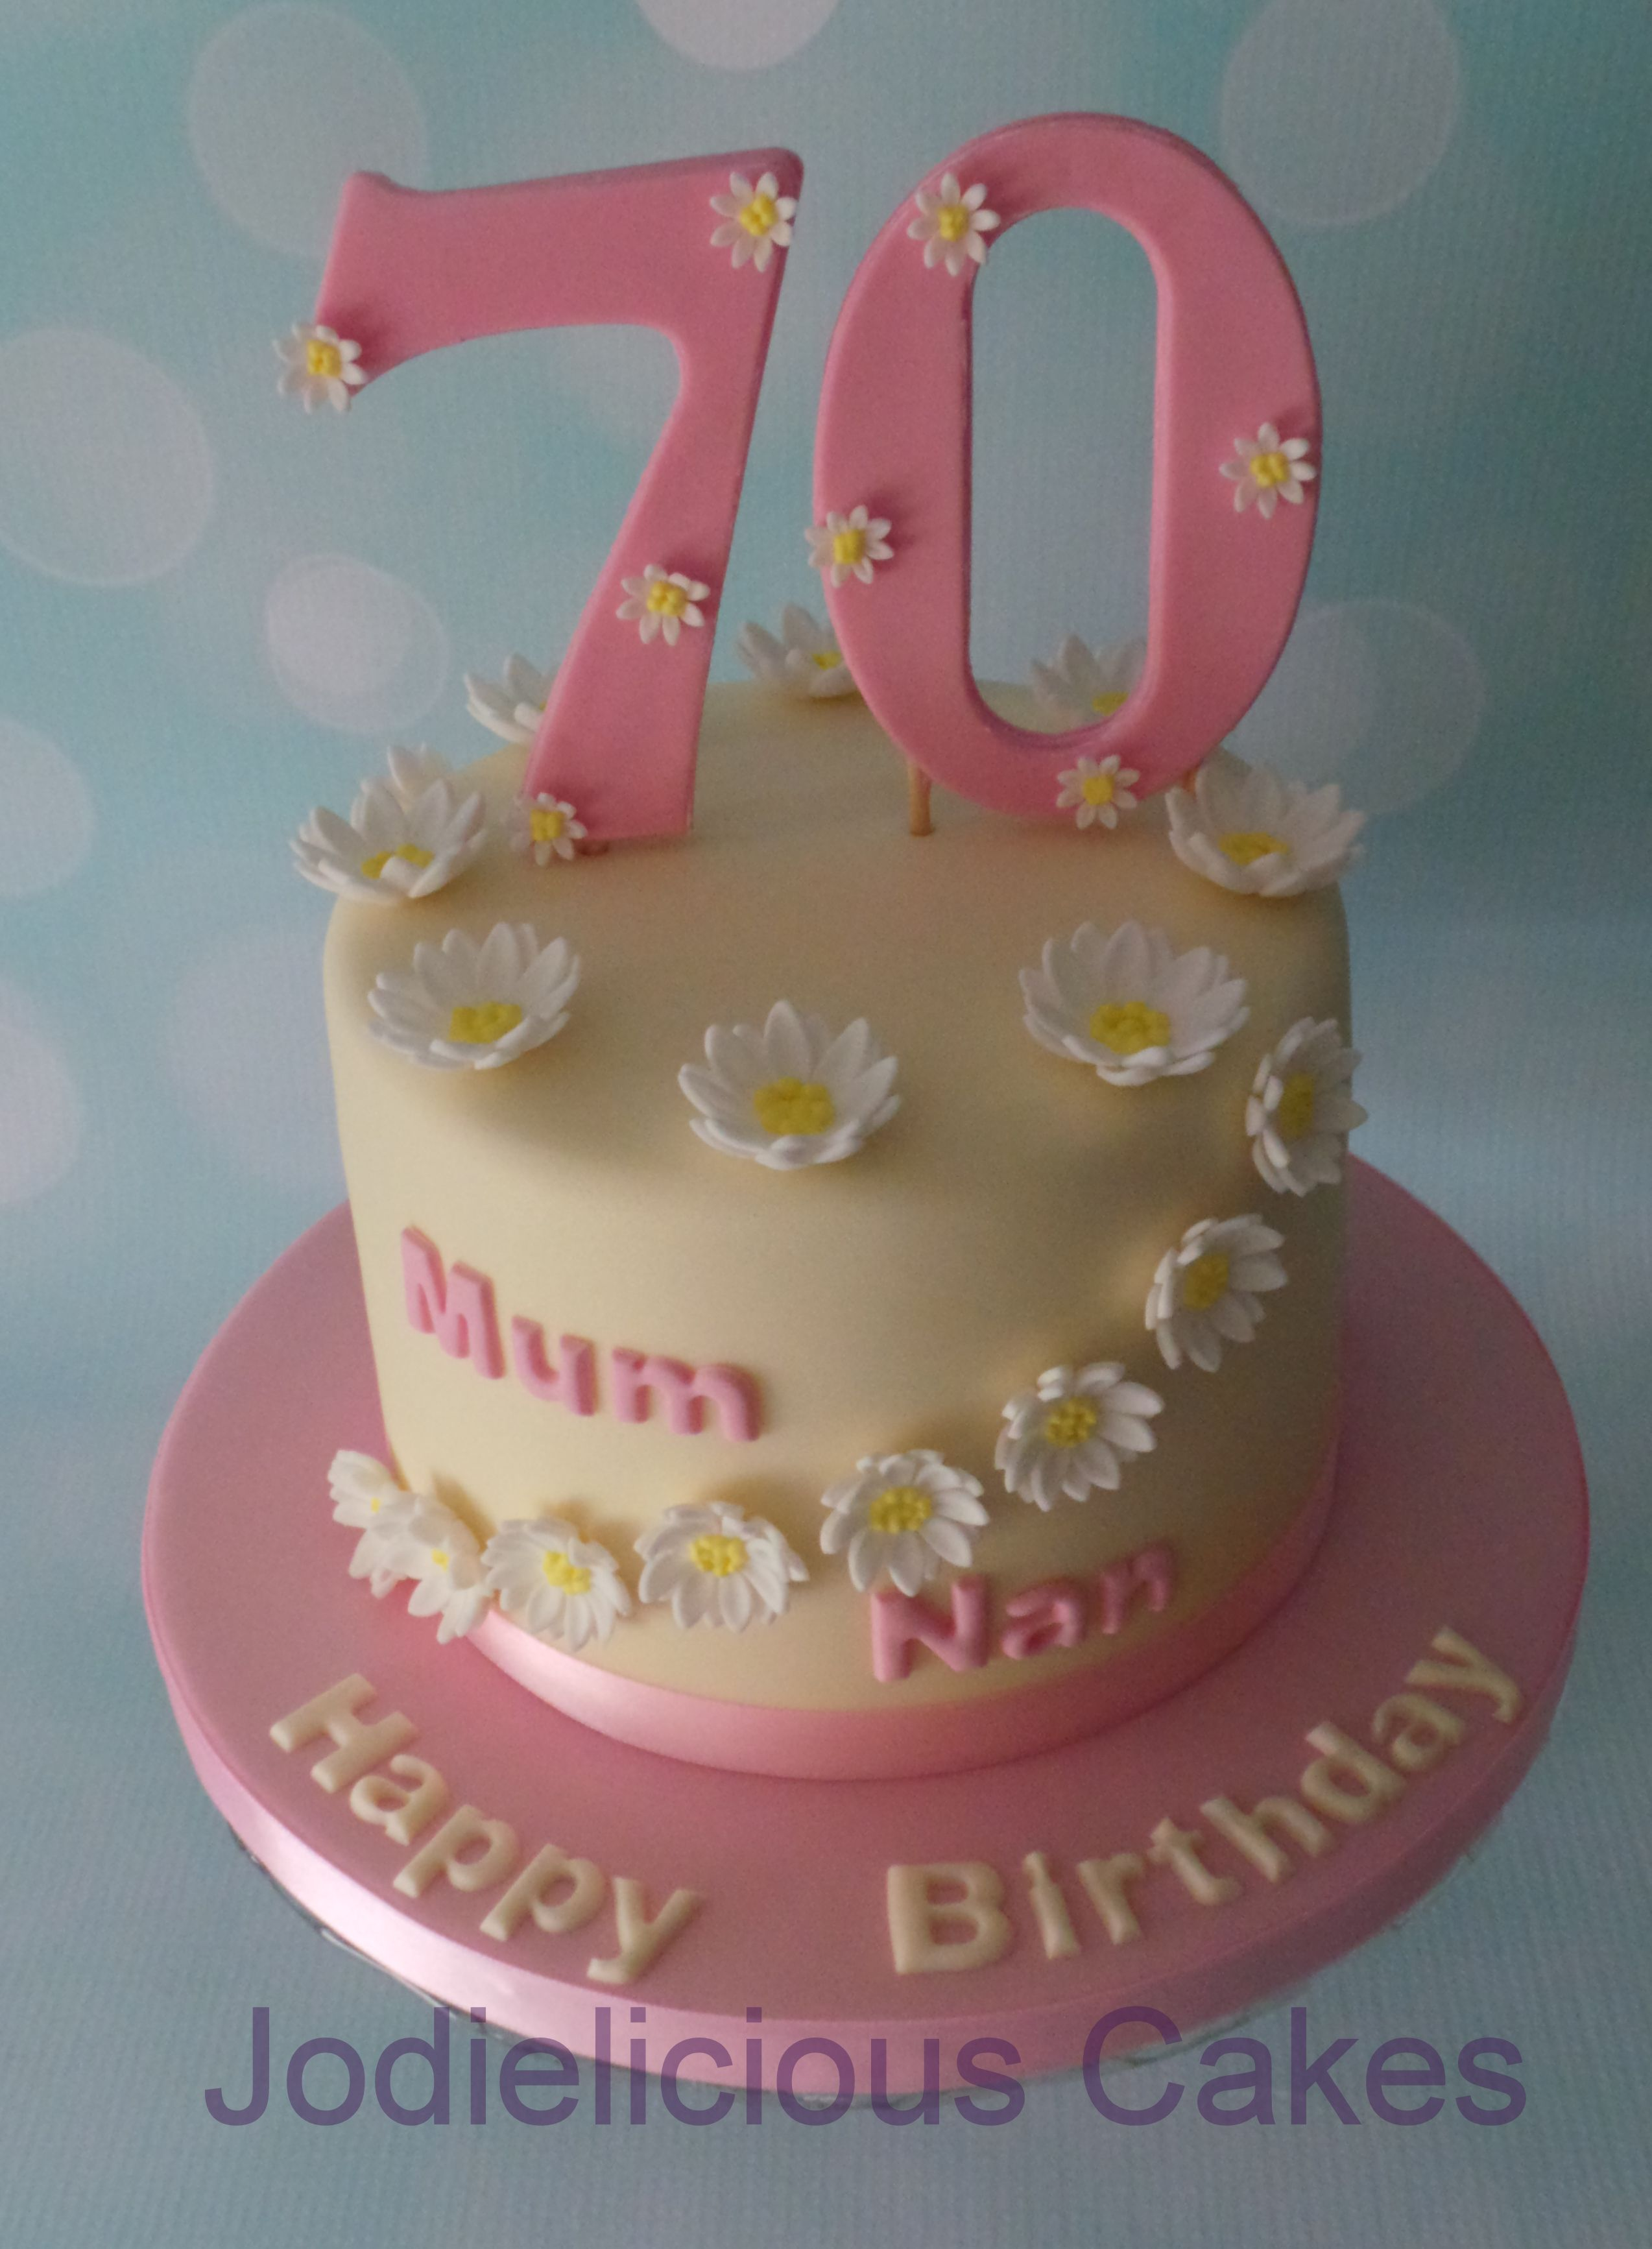 Vanilla Th Birthday Cake For A Lady Whos Favorite Flowers Are - Birthday cakes 70th ladies